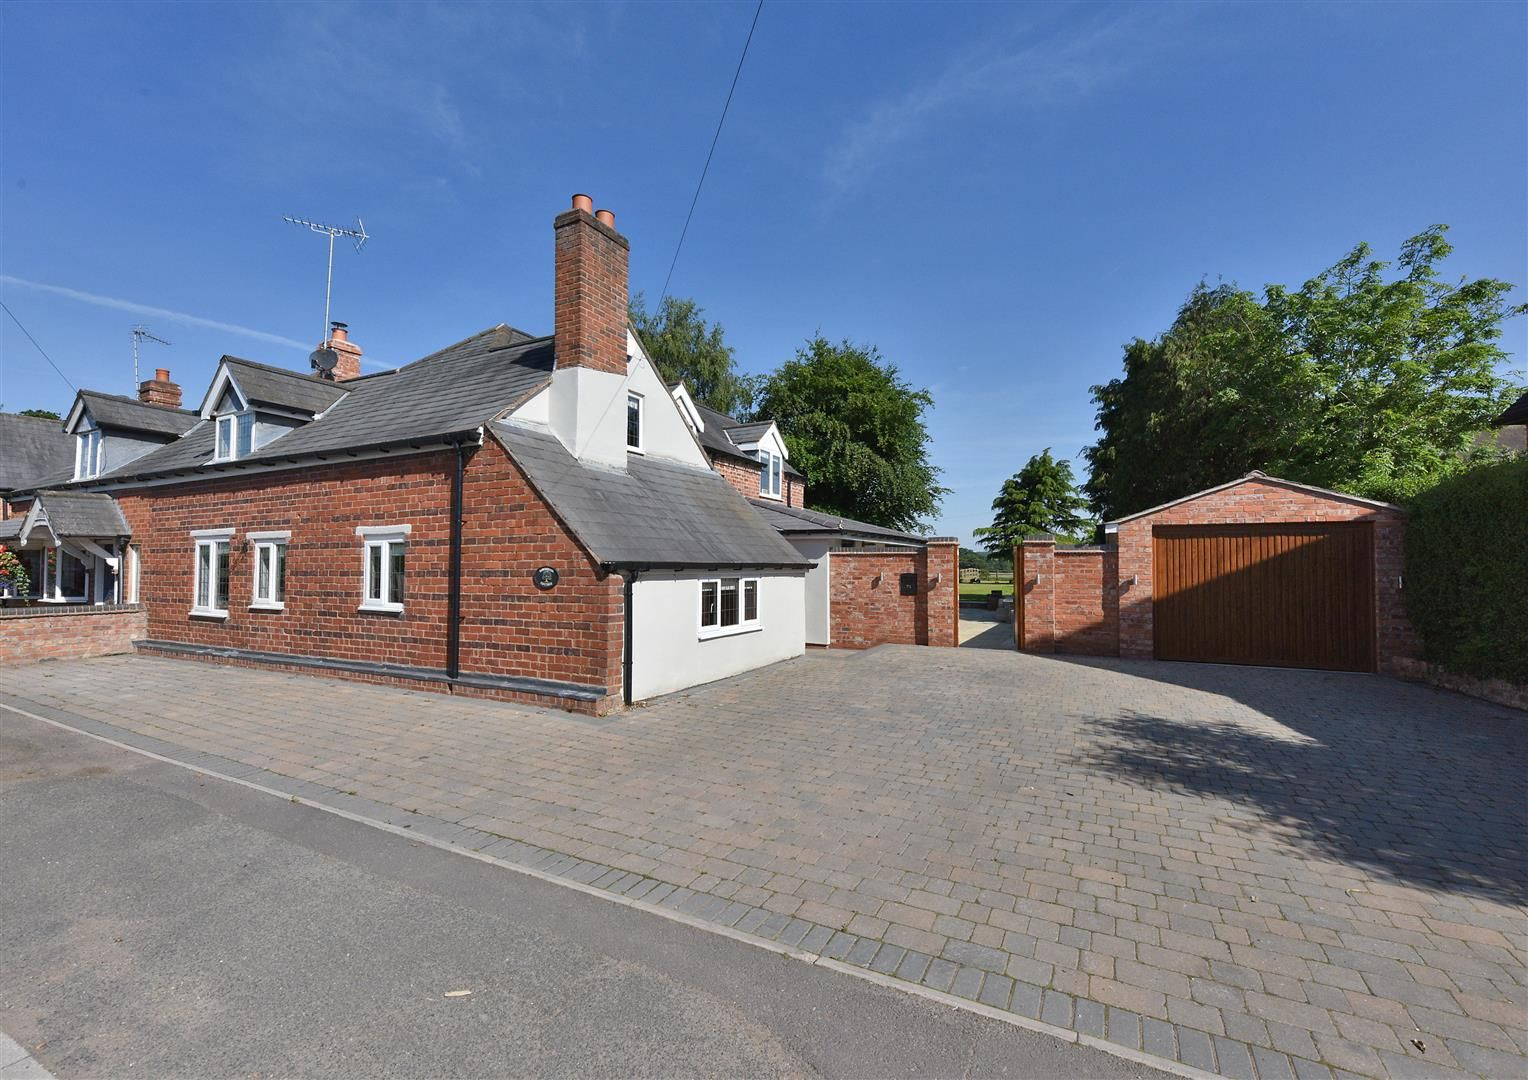 4 bed house for sale in Belbroughton  - Property Image 31